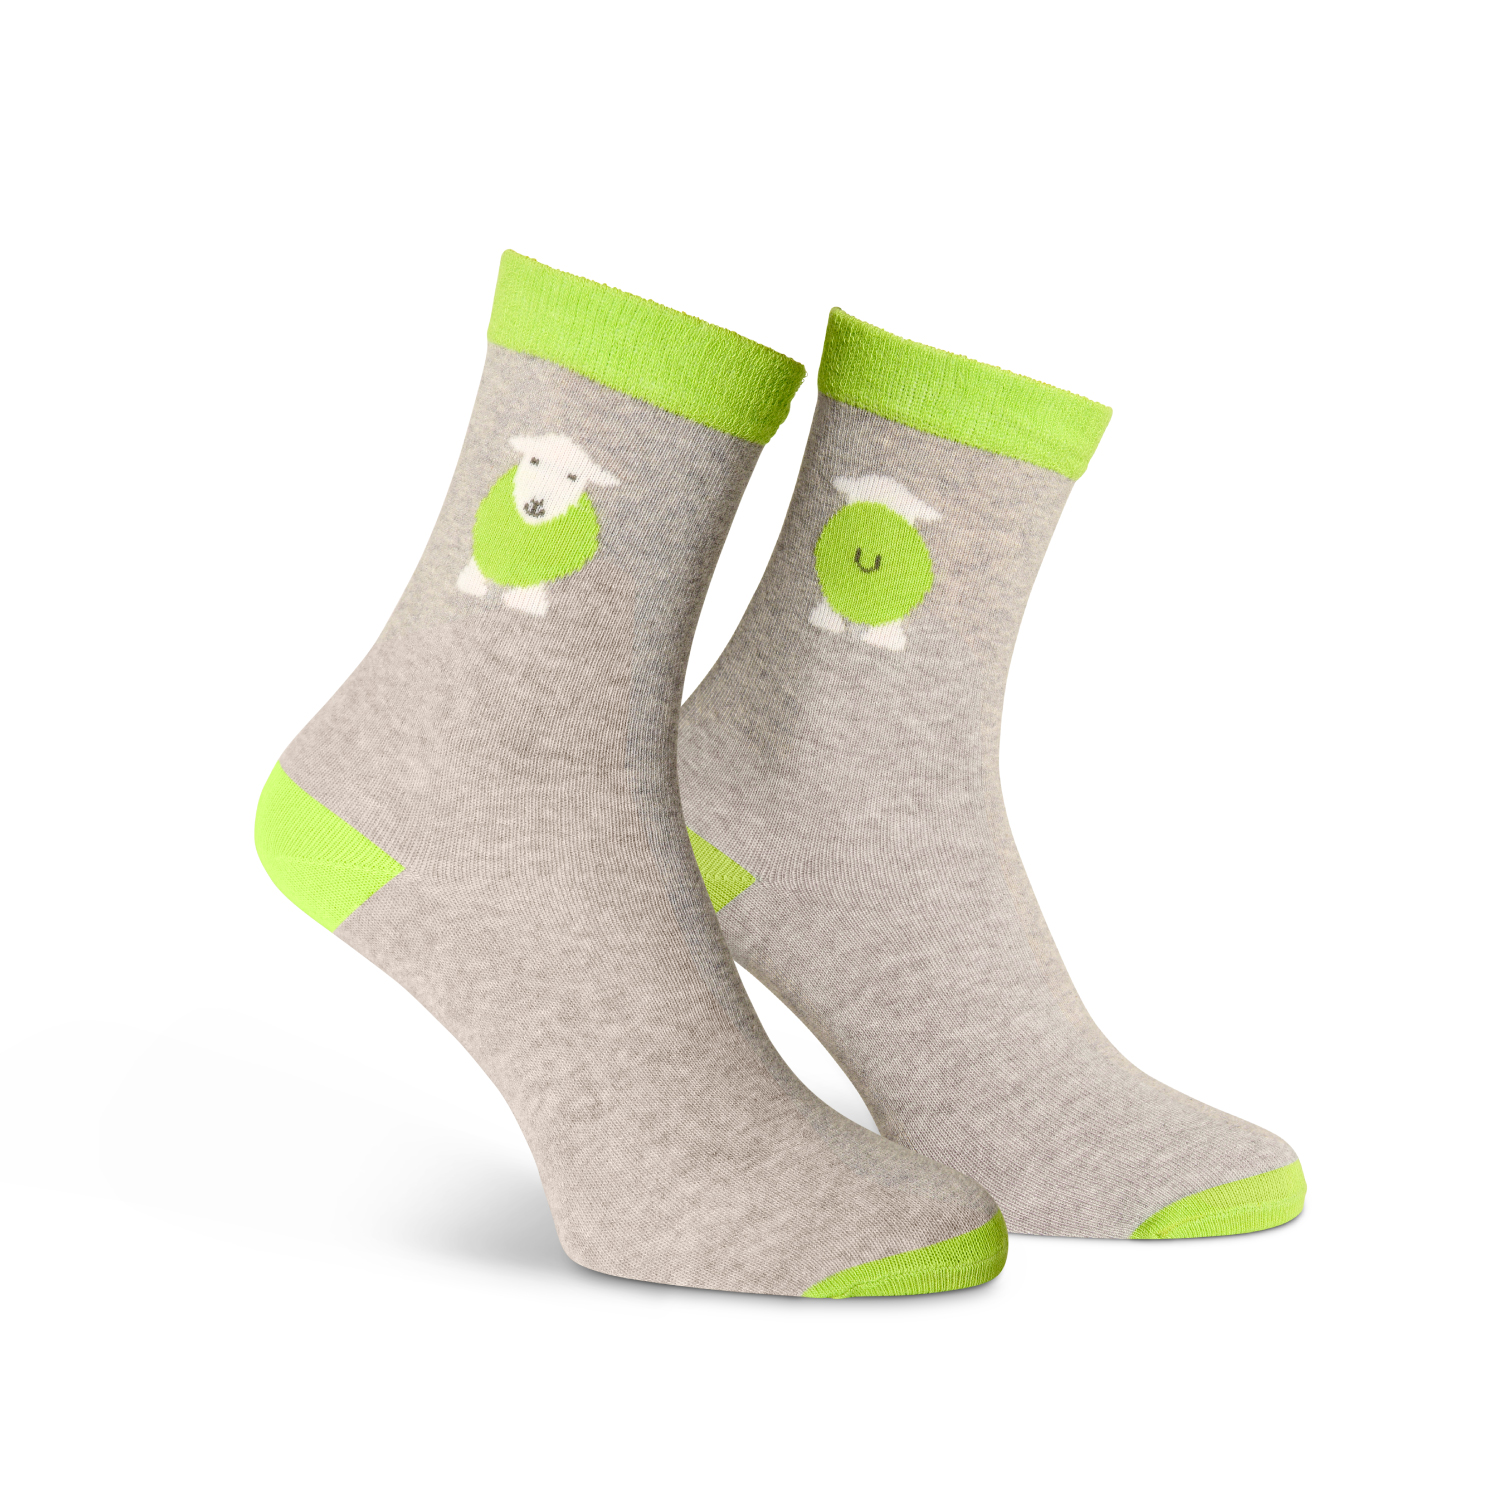 Kids Yan Socks - Green - Size 9-12 (27-30)